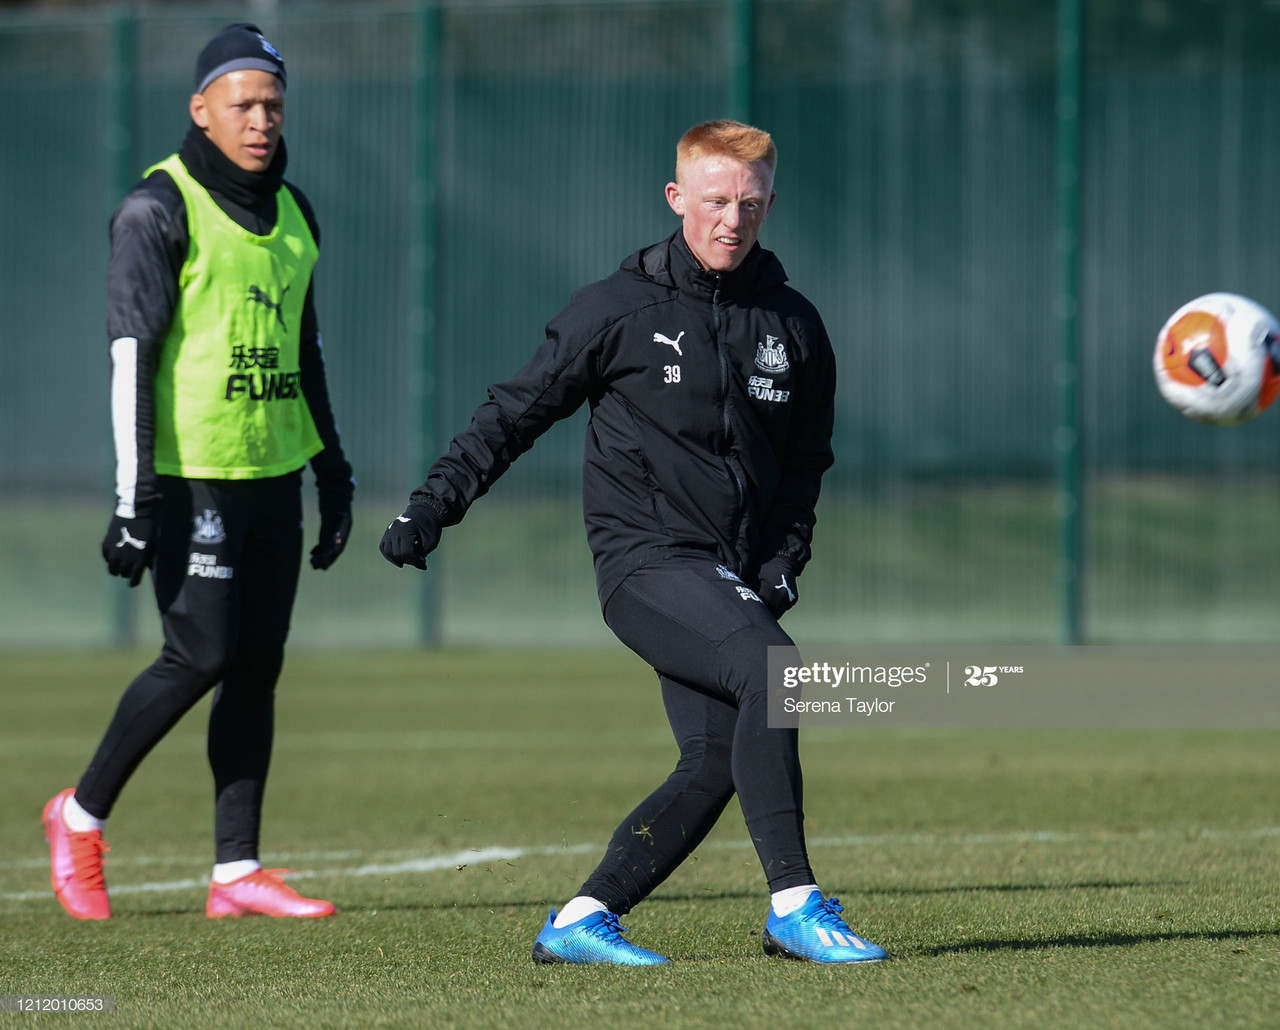 Does Matty Longstaff deserve a new contract and the temptation to leave